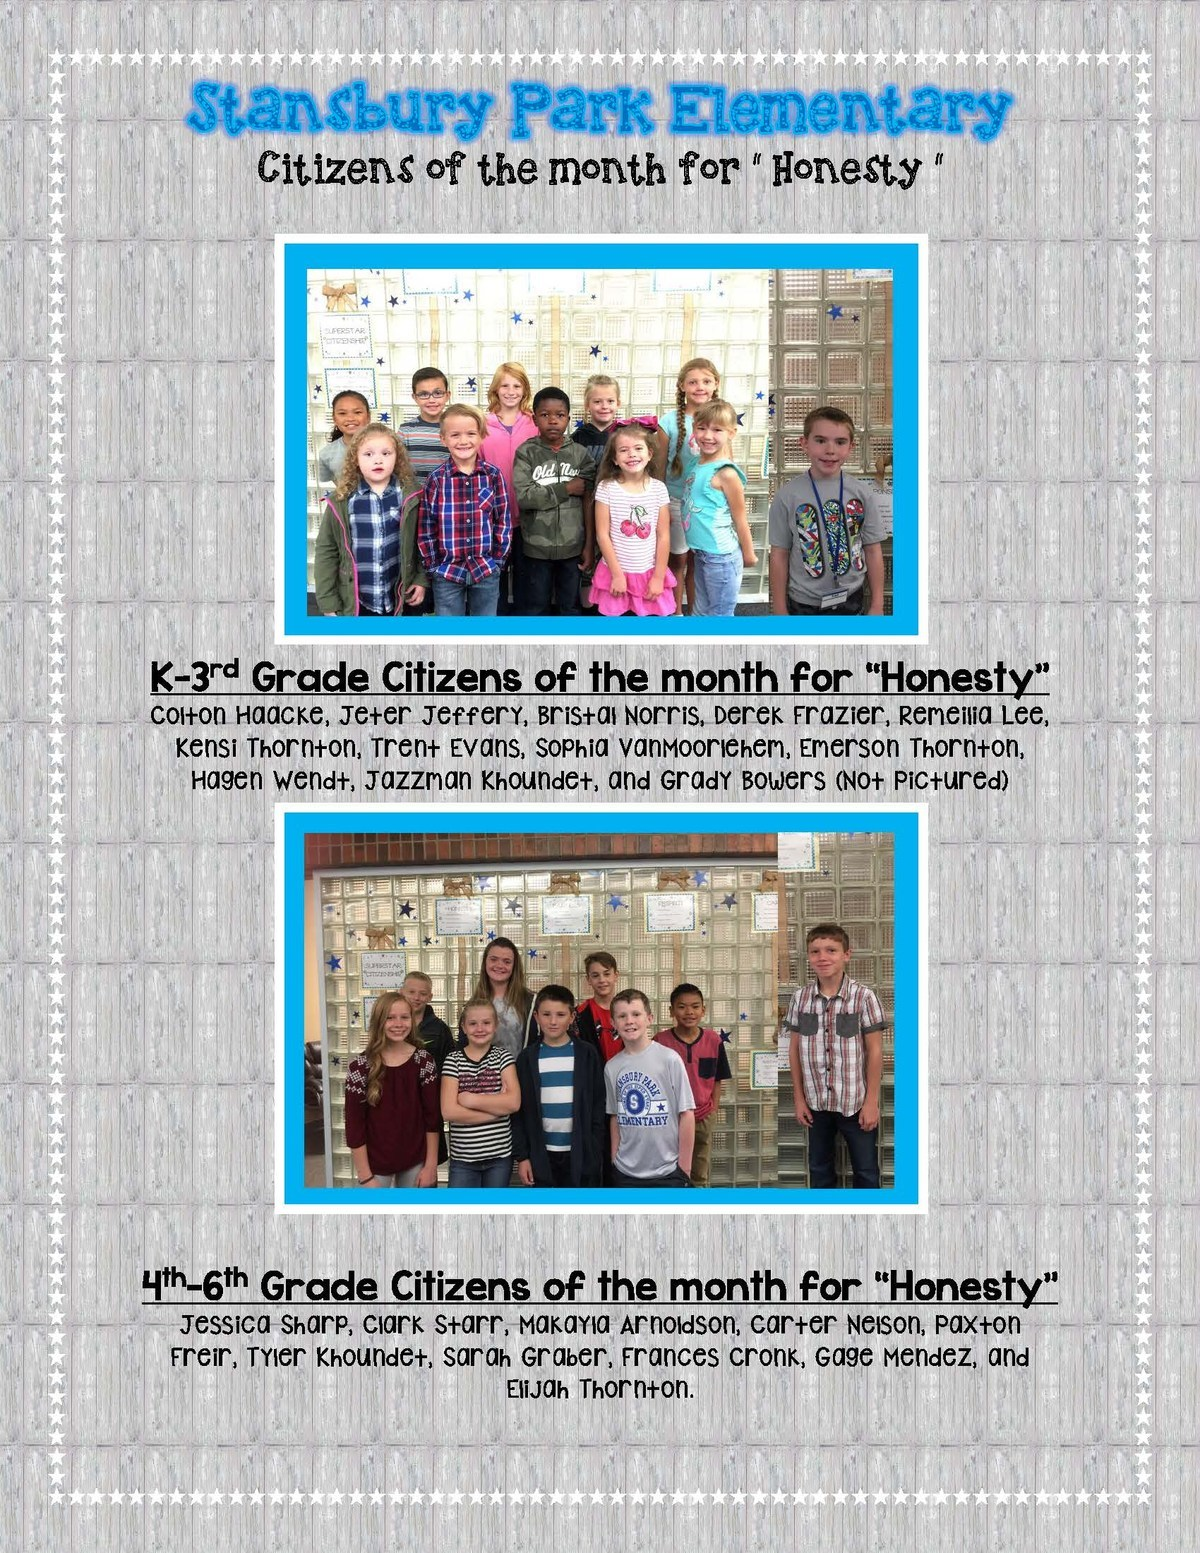 Honesty Citizens of the month